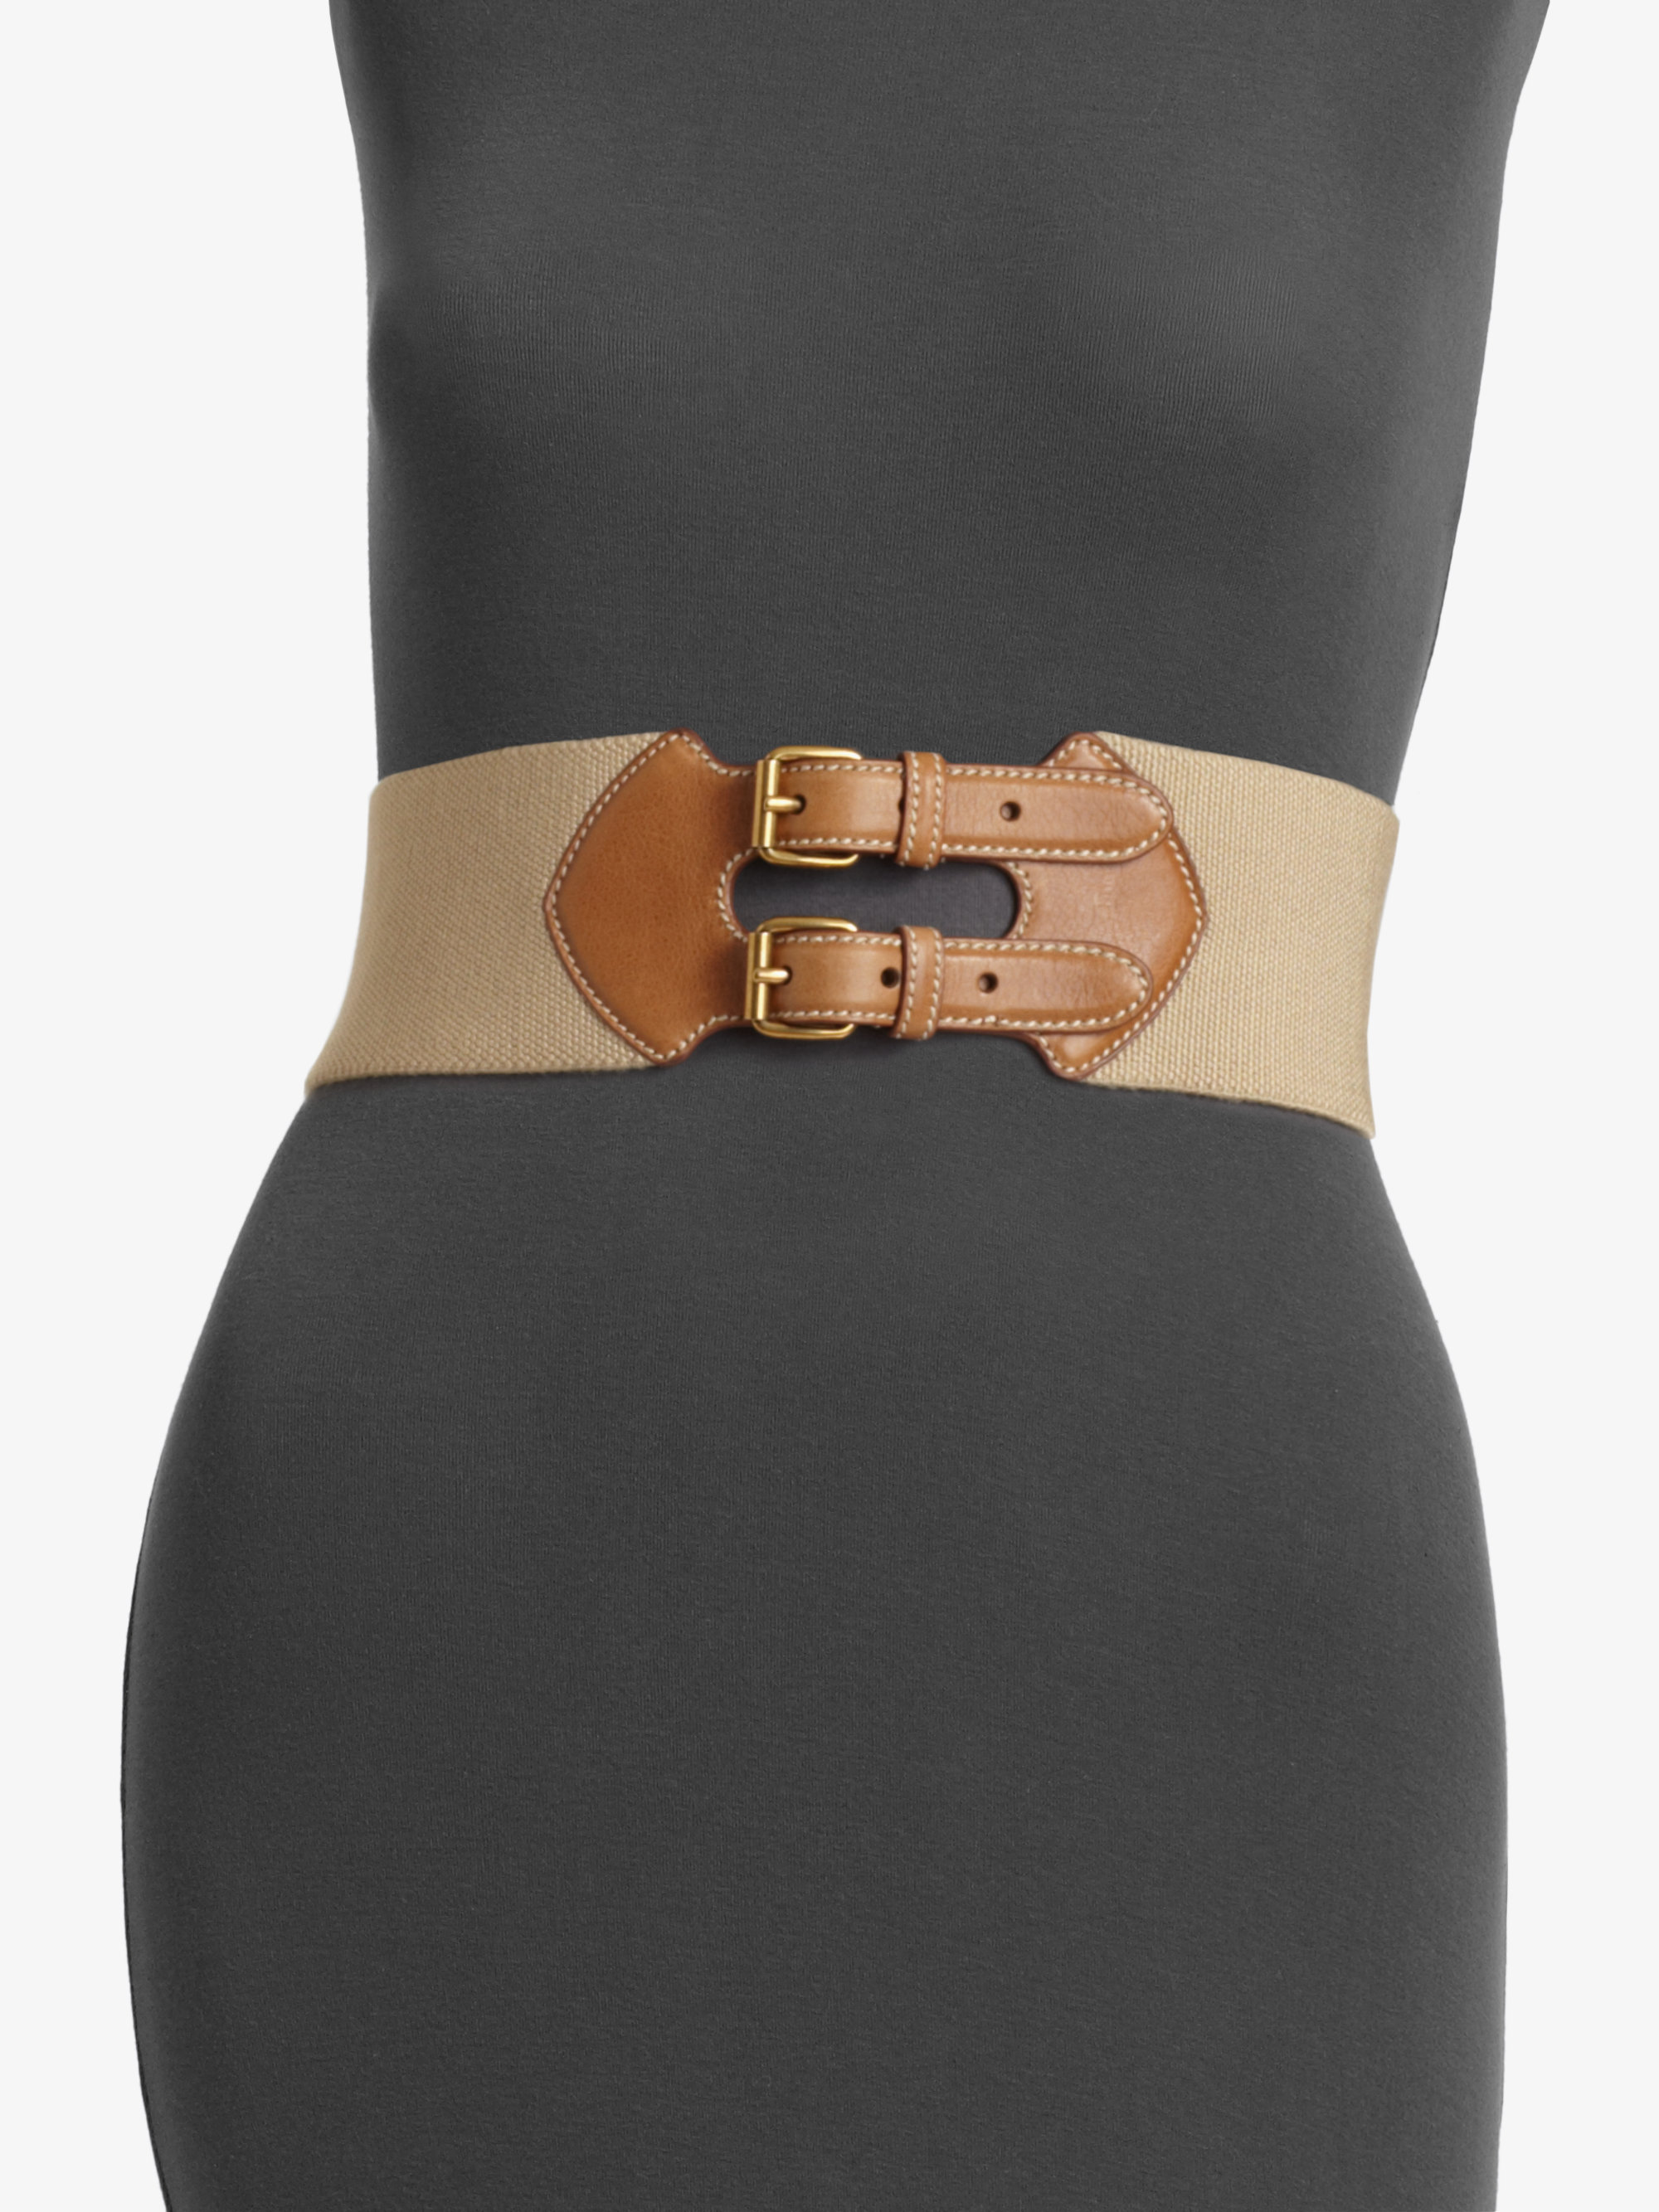 Prada Leather Accented Elastic Belt in Brown | Lyst